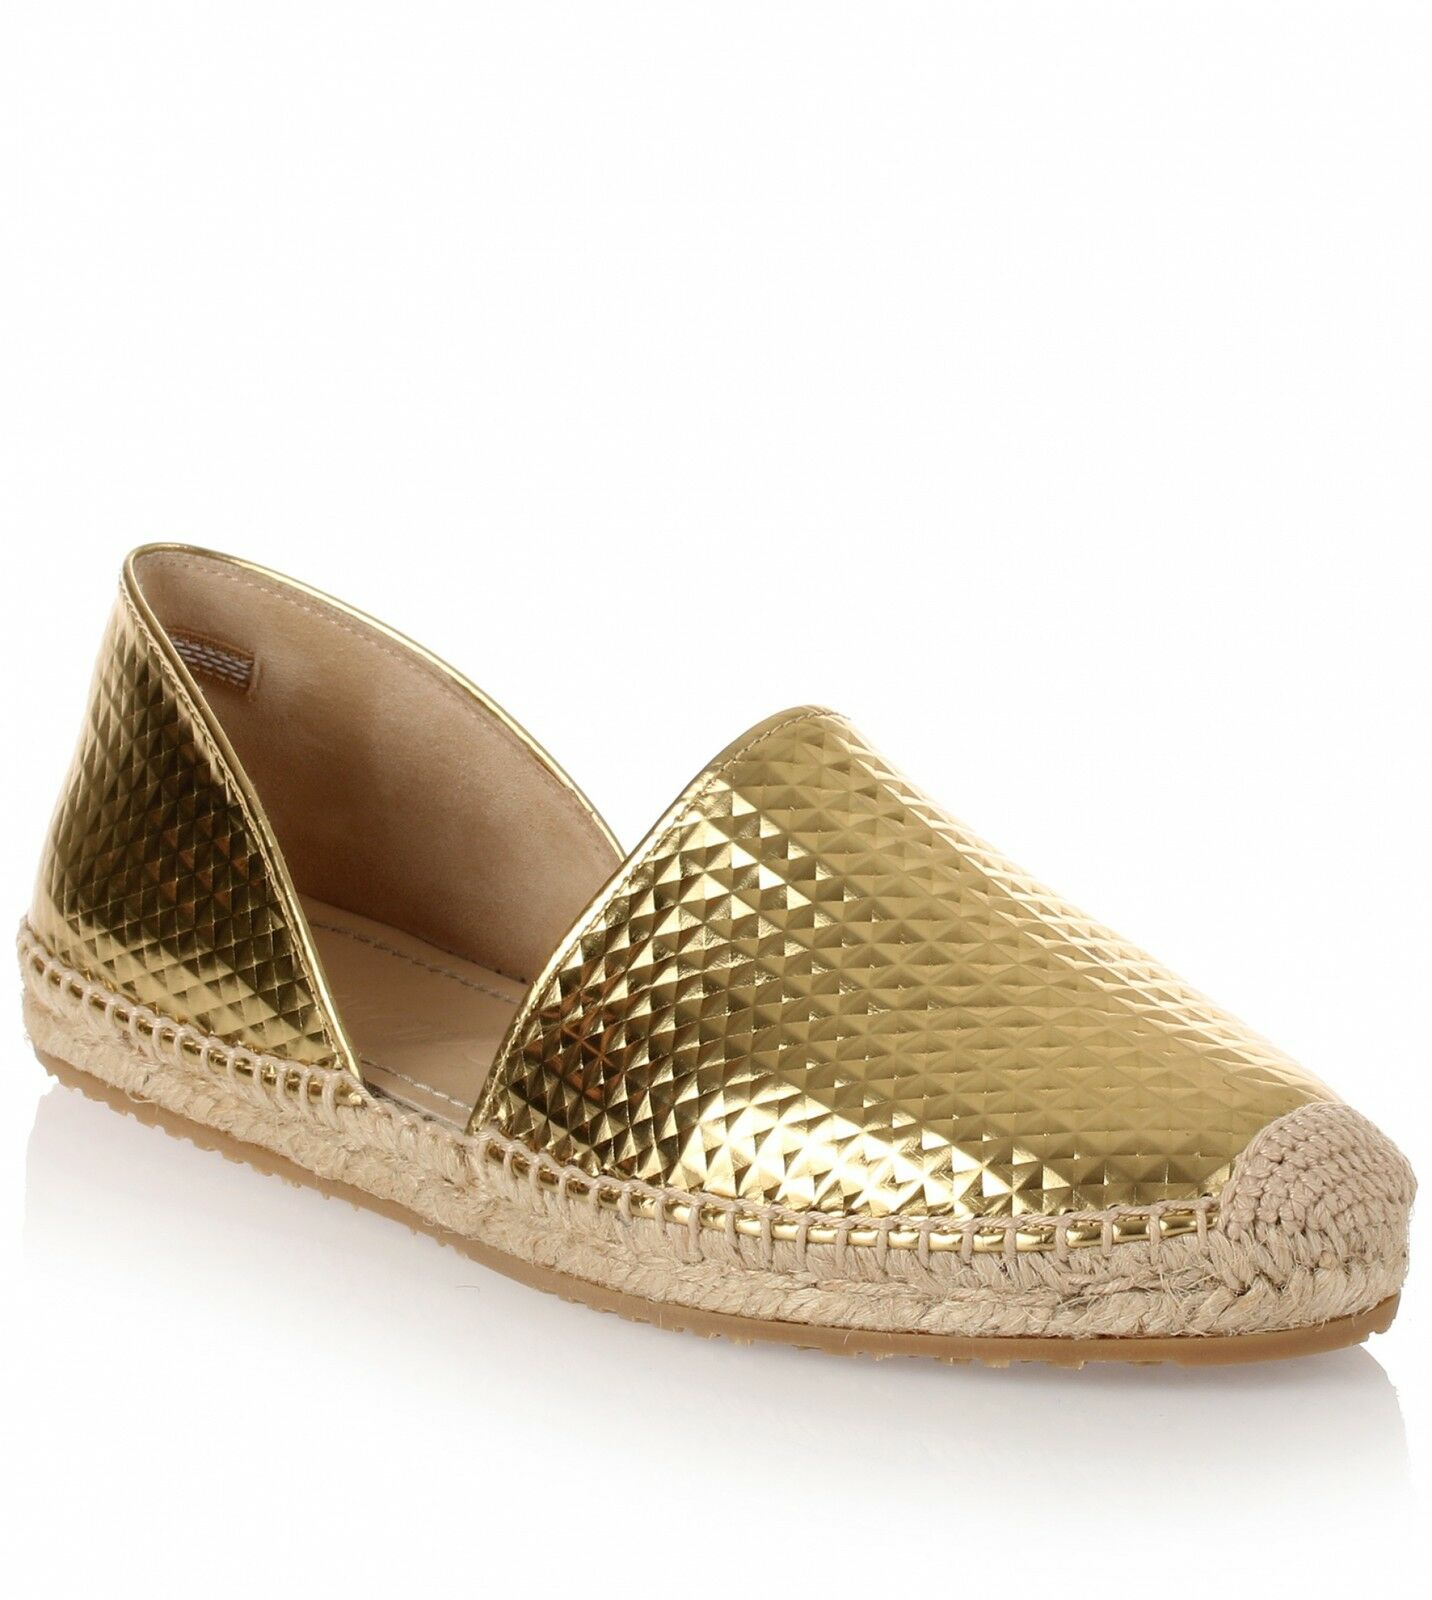 Jimmy Choo Dreya Gold Cubed Mirror Leather Espadrille Flat Shoe Espadrille 36.5